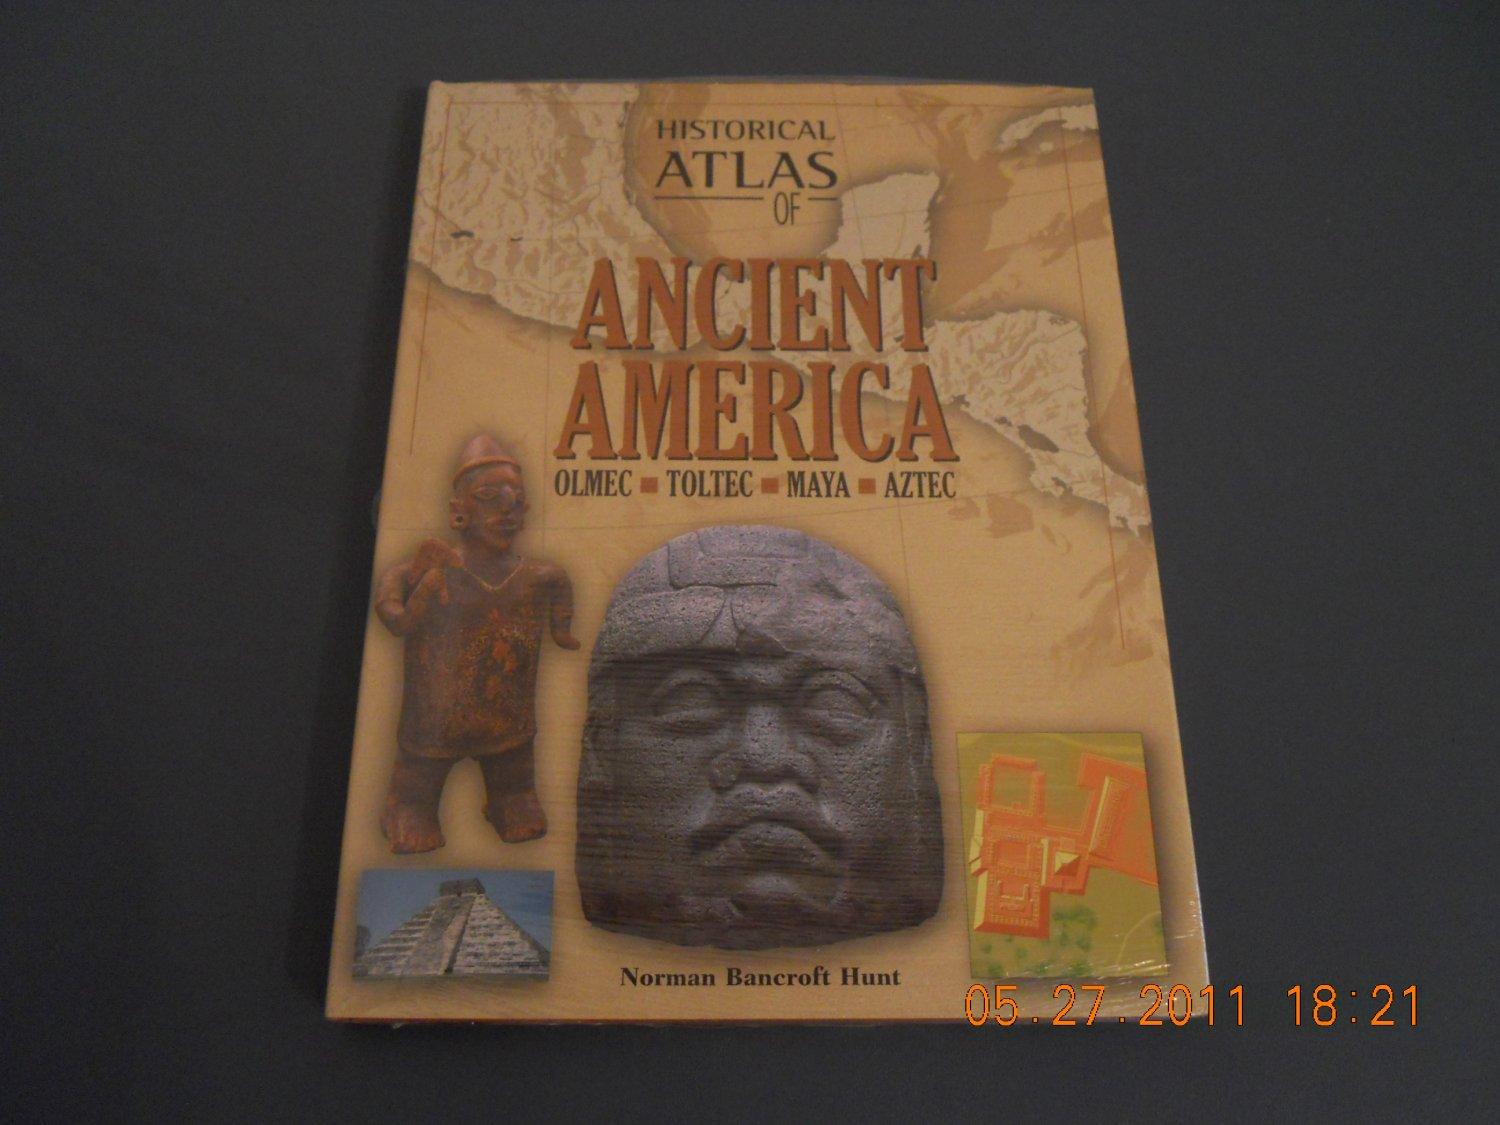 Historical Atlas of Ancient America: Olmec, Toltec, Maya, Aztec Hardcover rare book